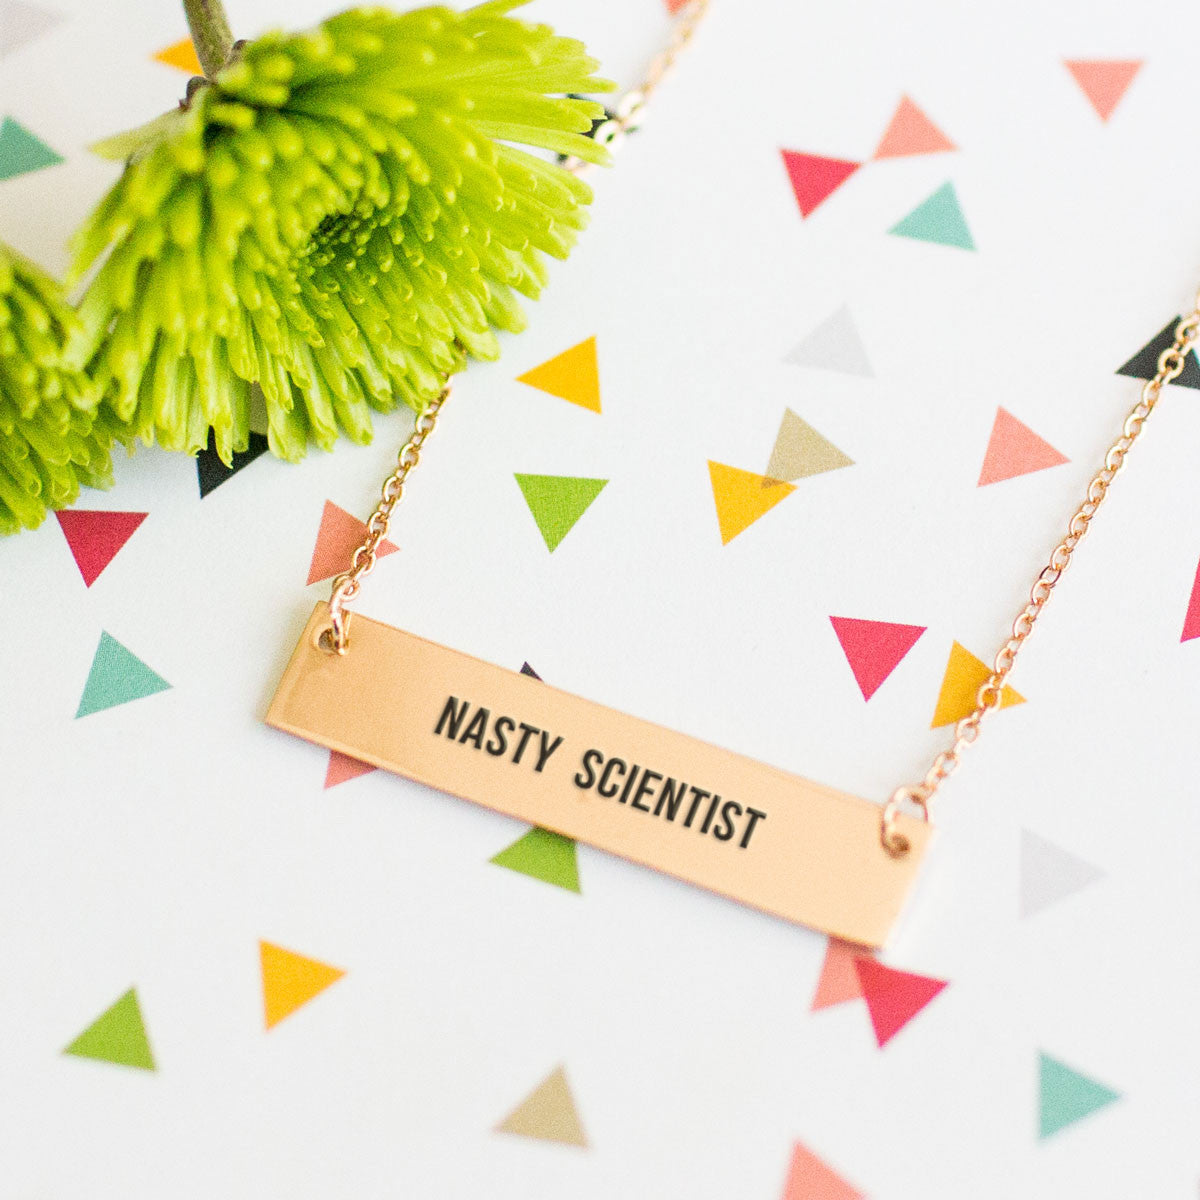 Nasty Scientist Gold / Silver Bar Necklace - pipercleo.com